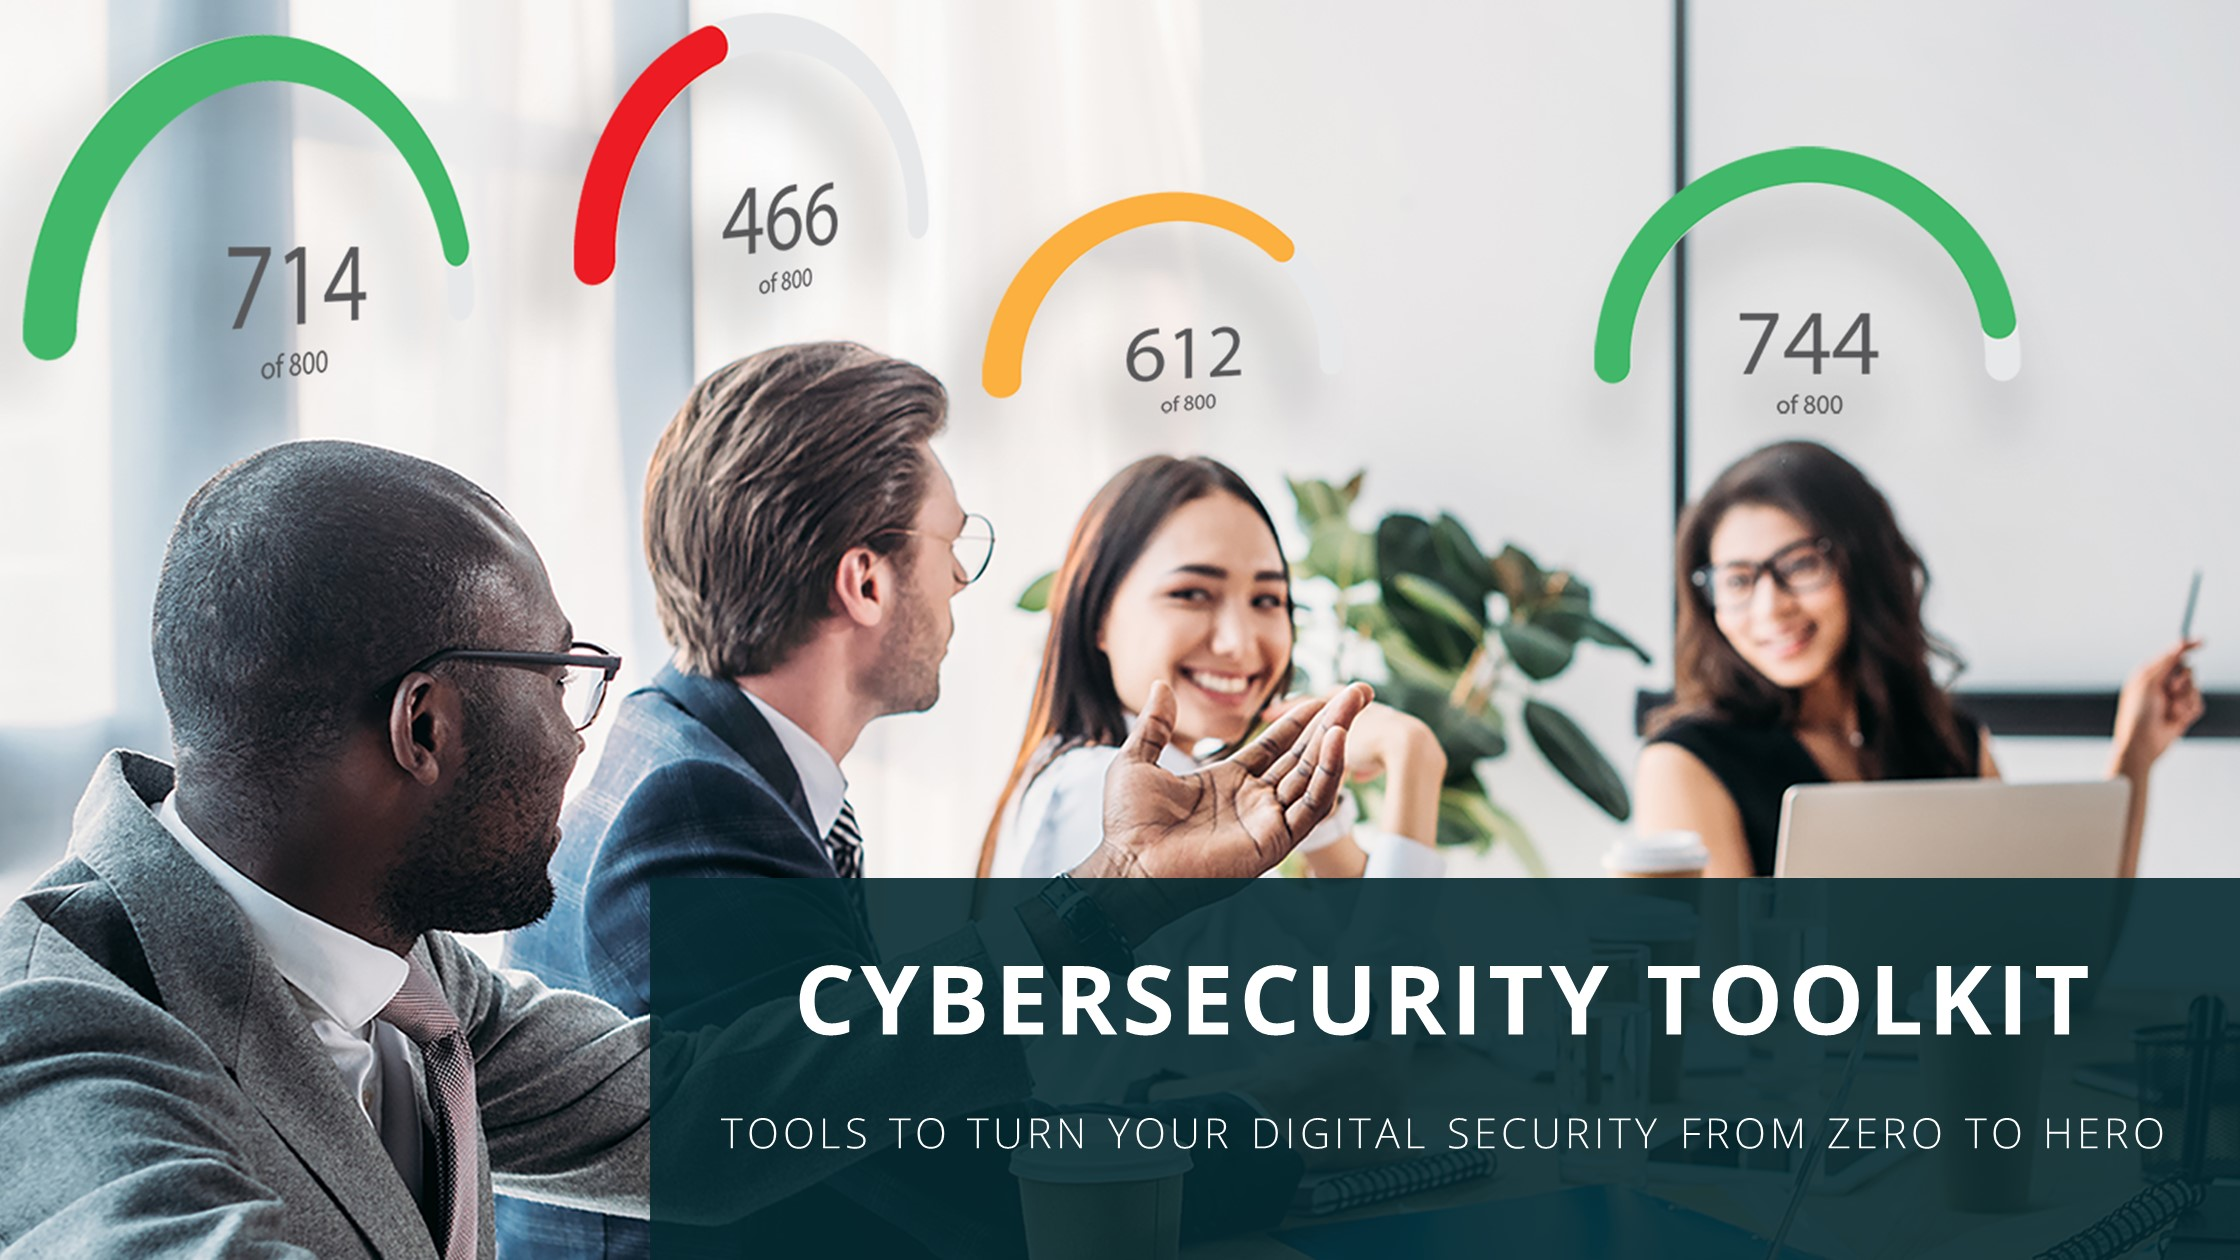 Coworkers with imaginary security scores above their heads